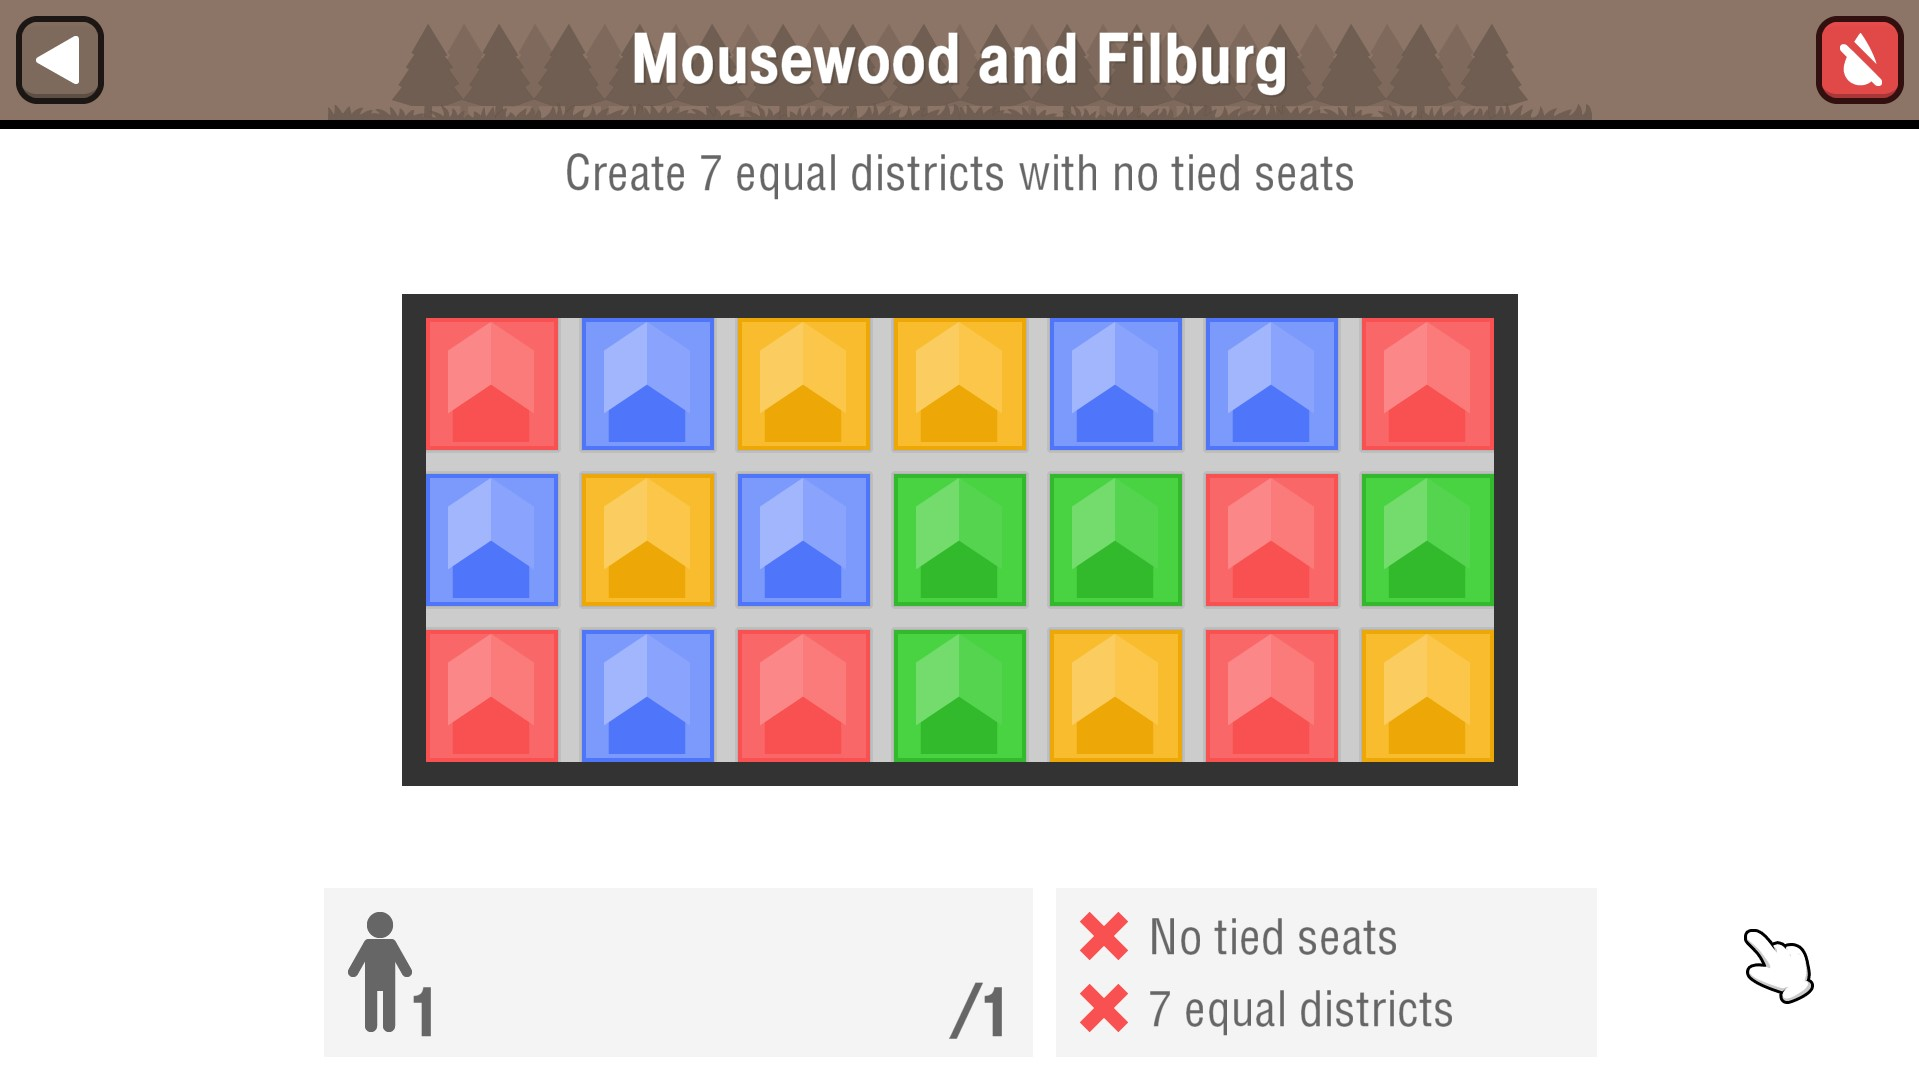 Mousewood and Filburg